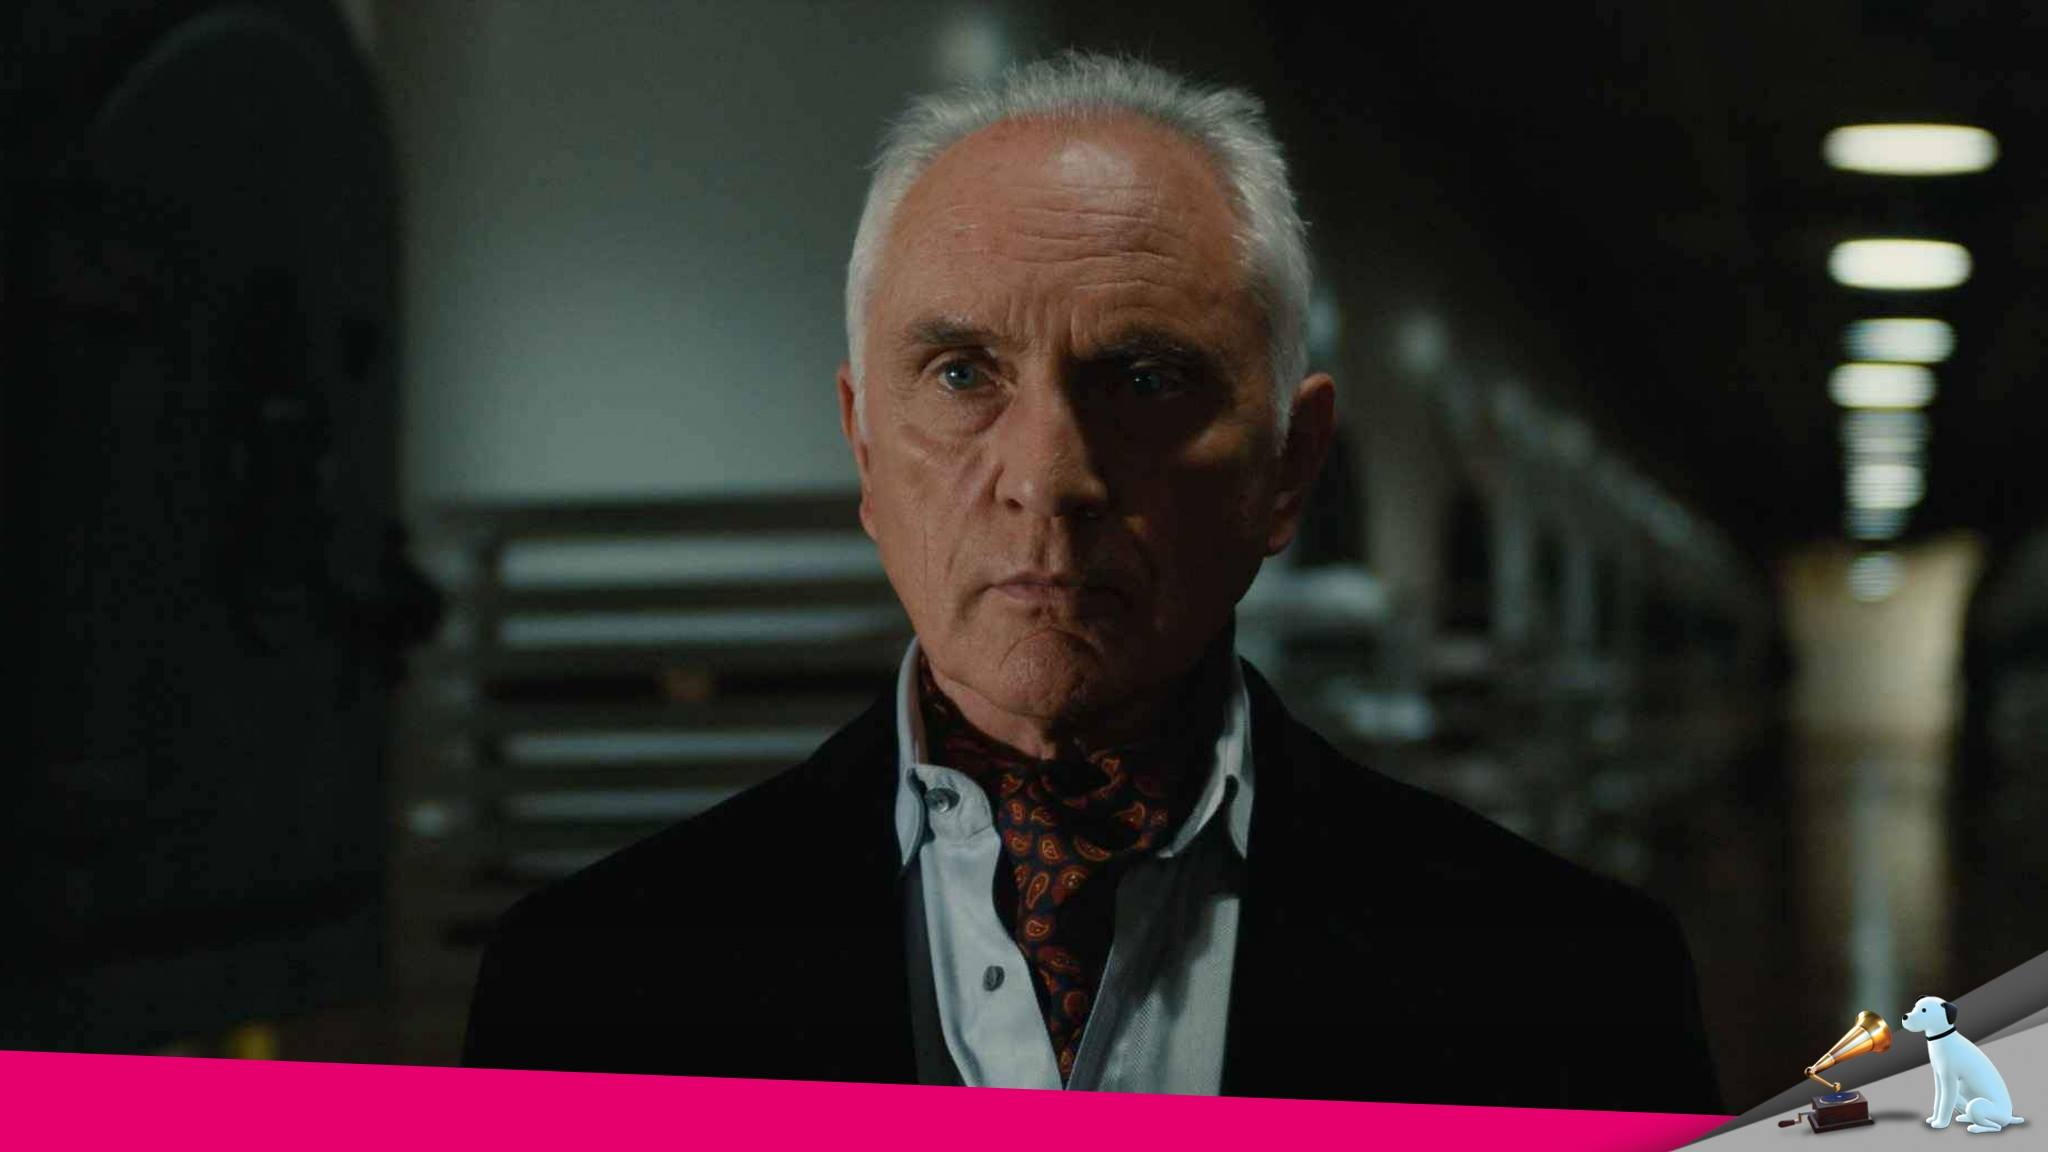 Terence Stamp 80th birthday timeline